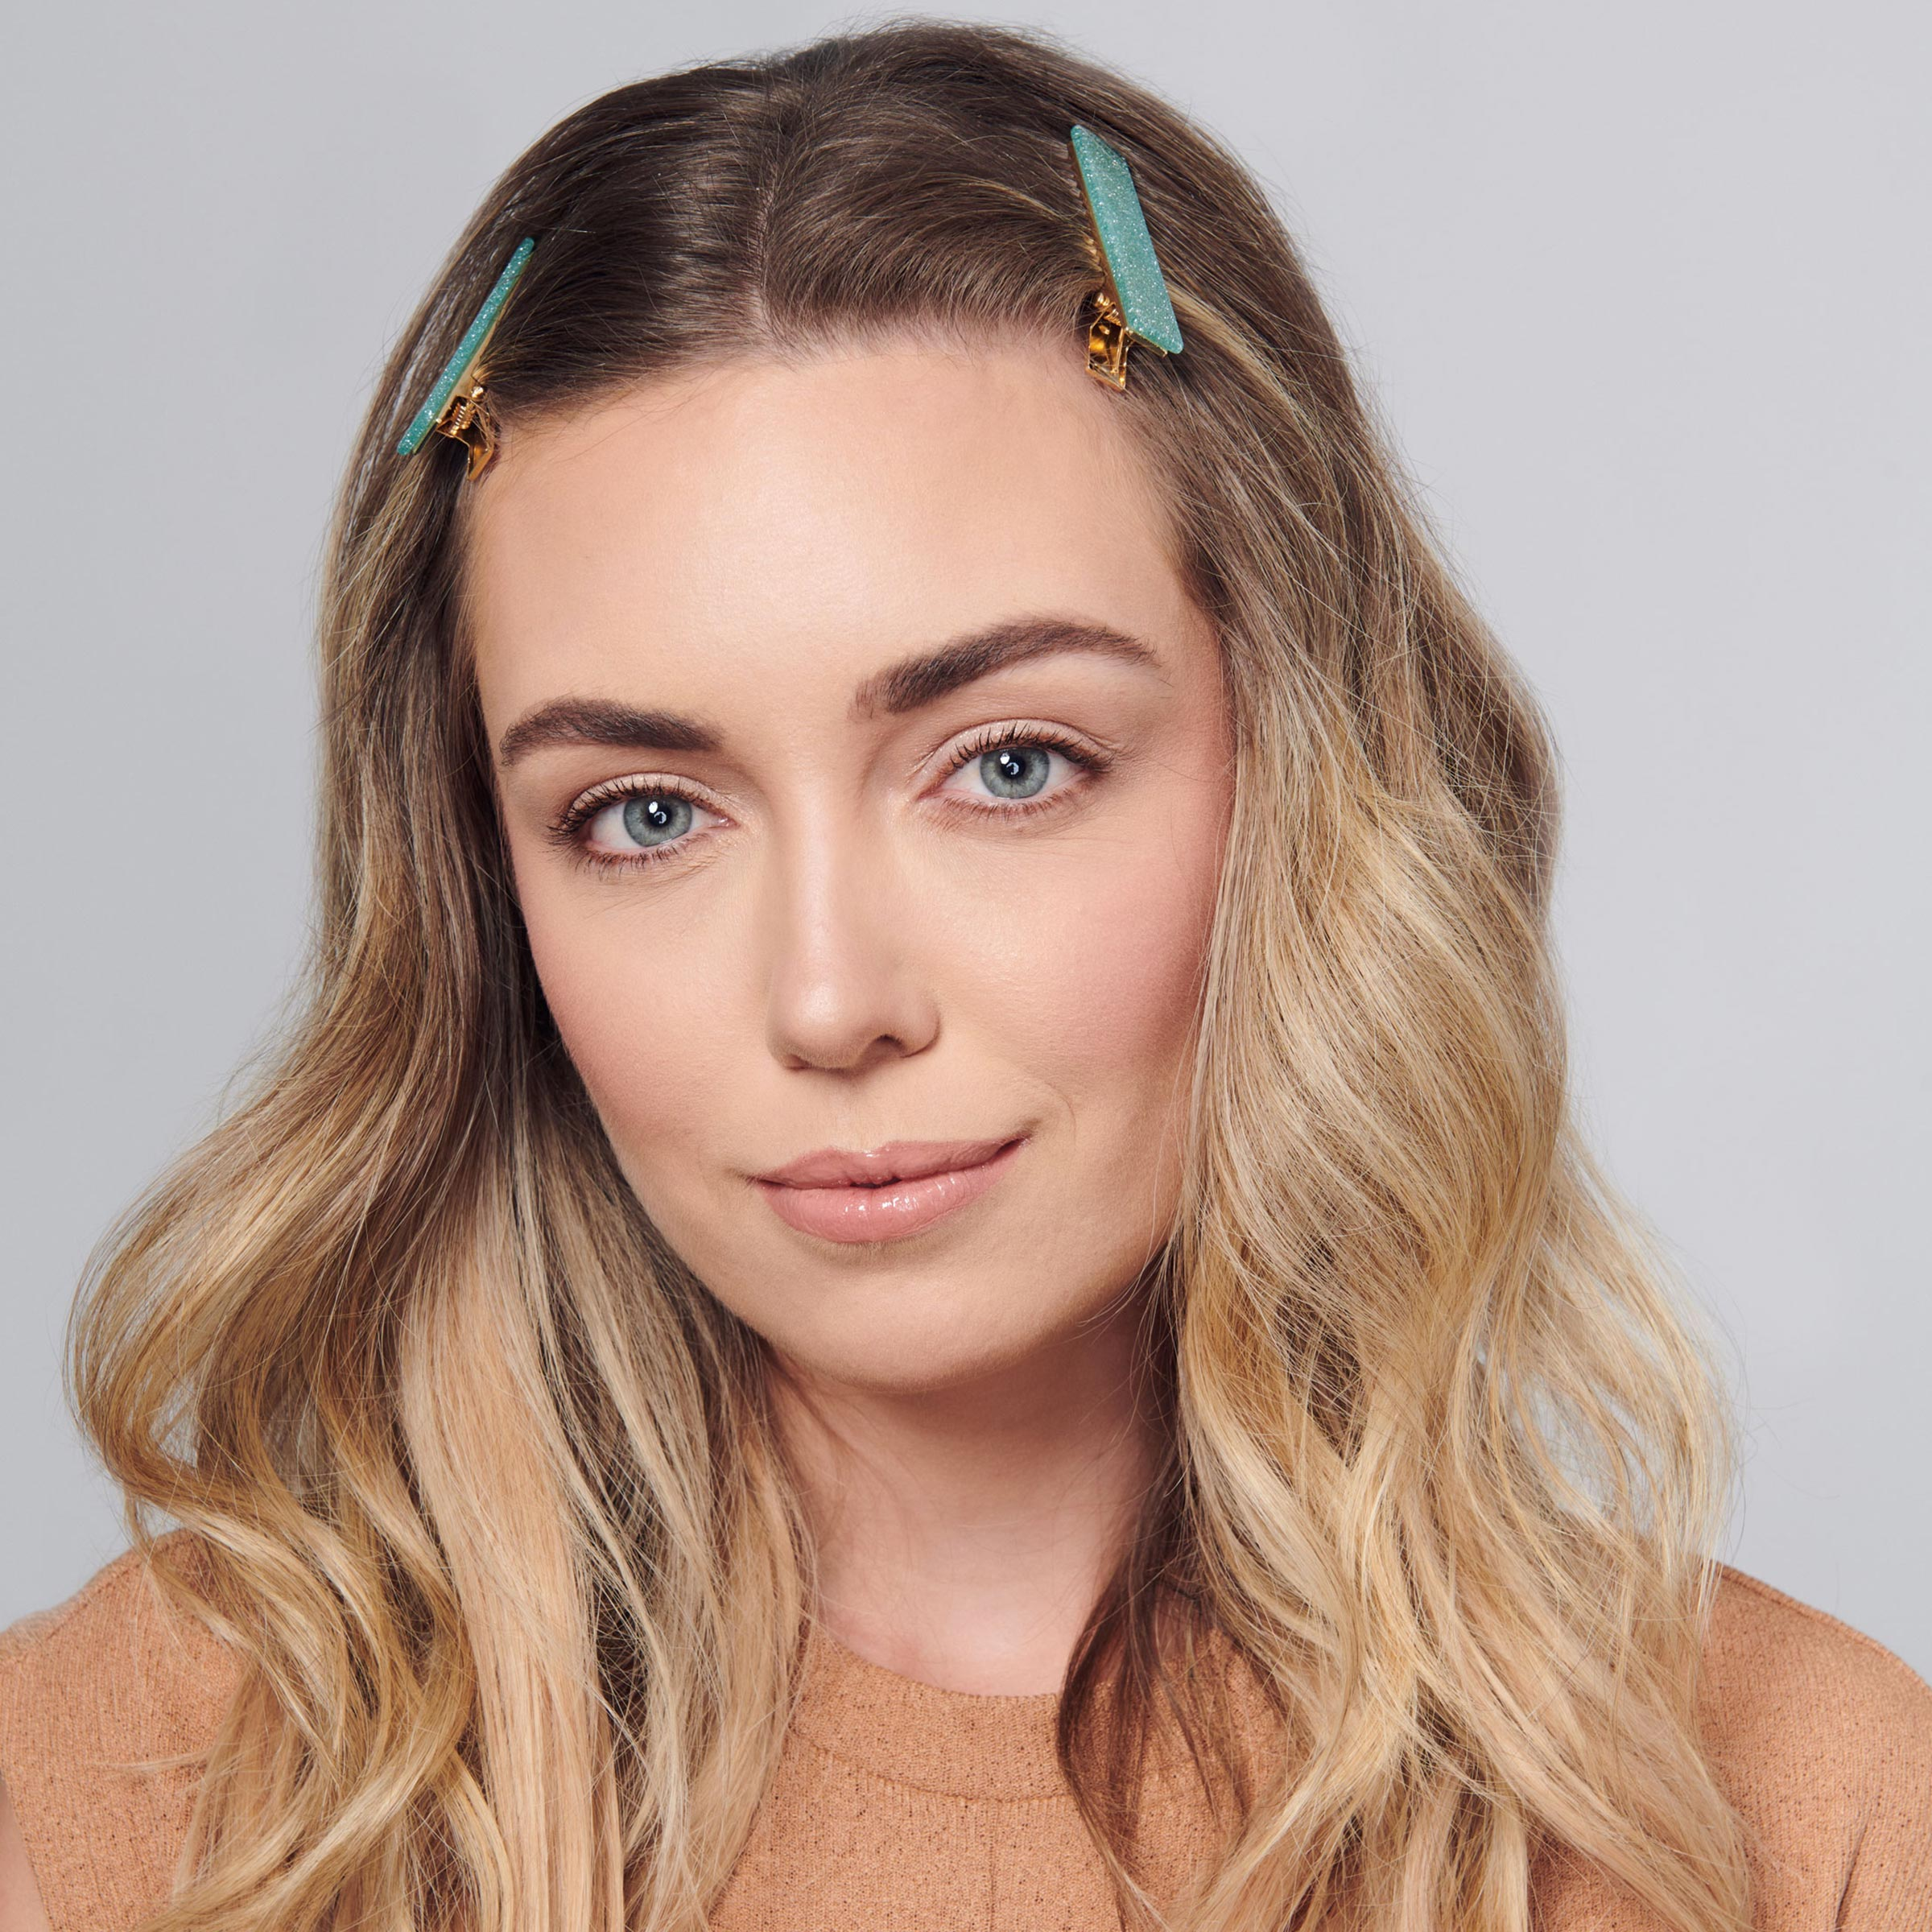 7 Chic And Stylish Ways To Wear Hair Accessories L Ange Hair